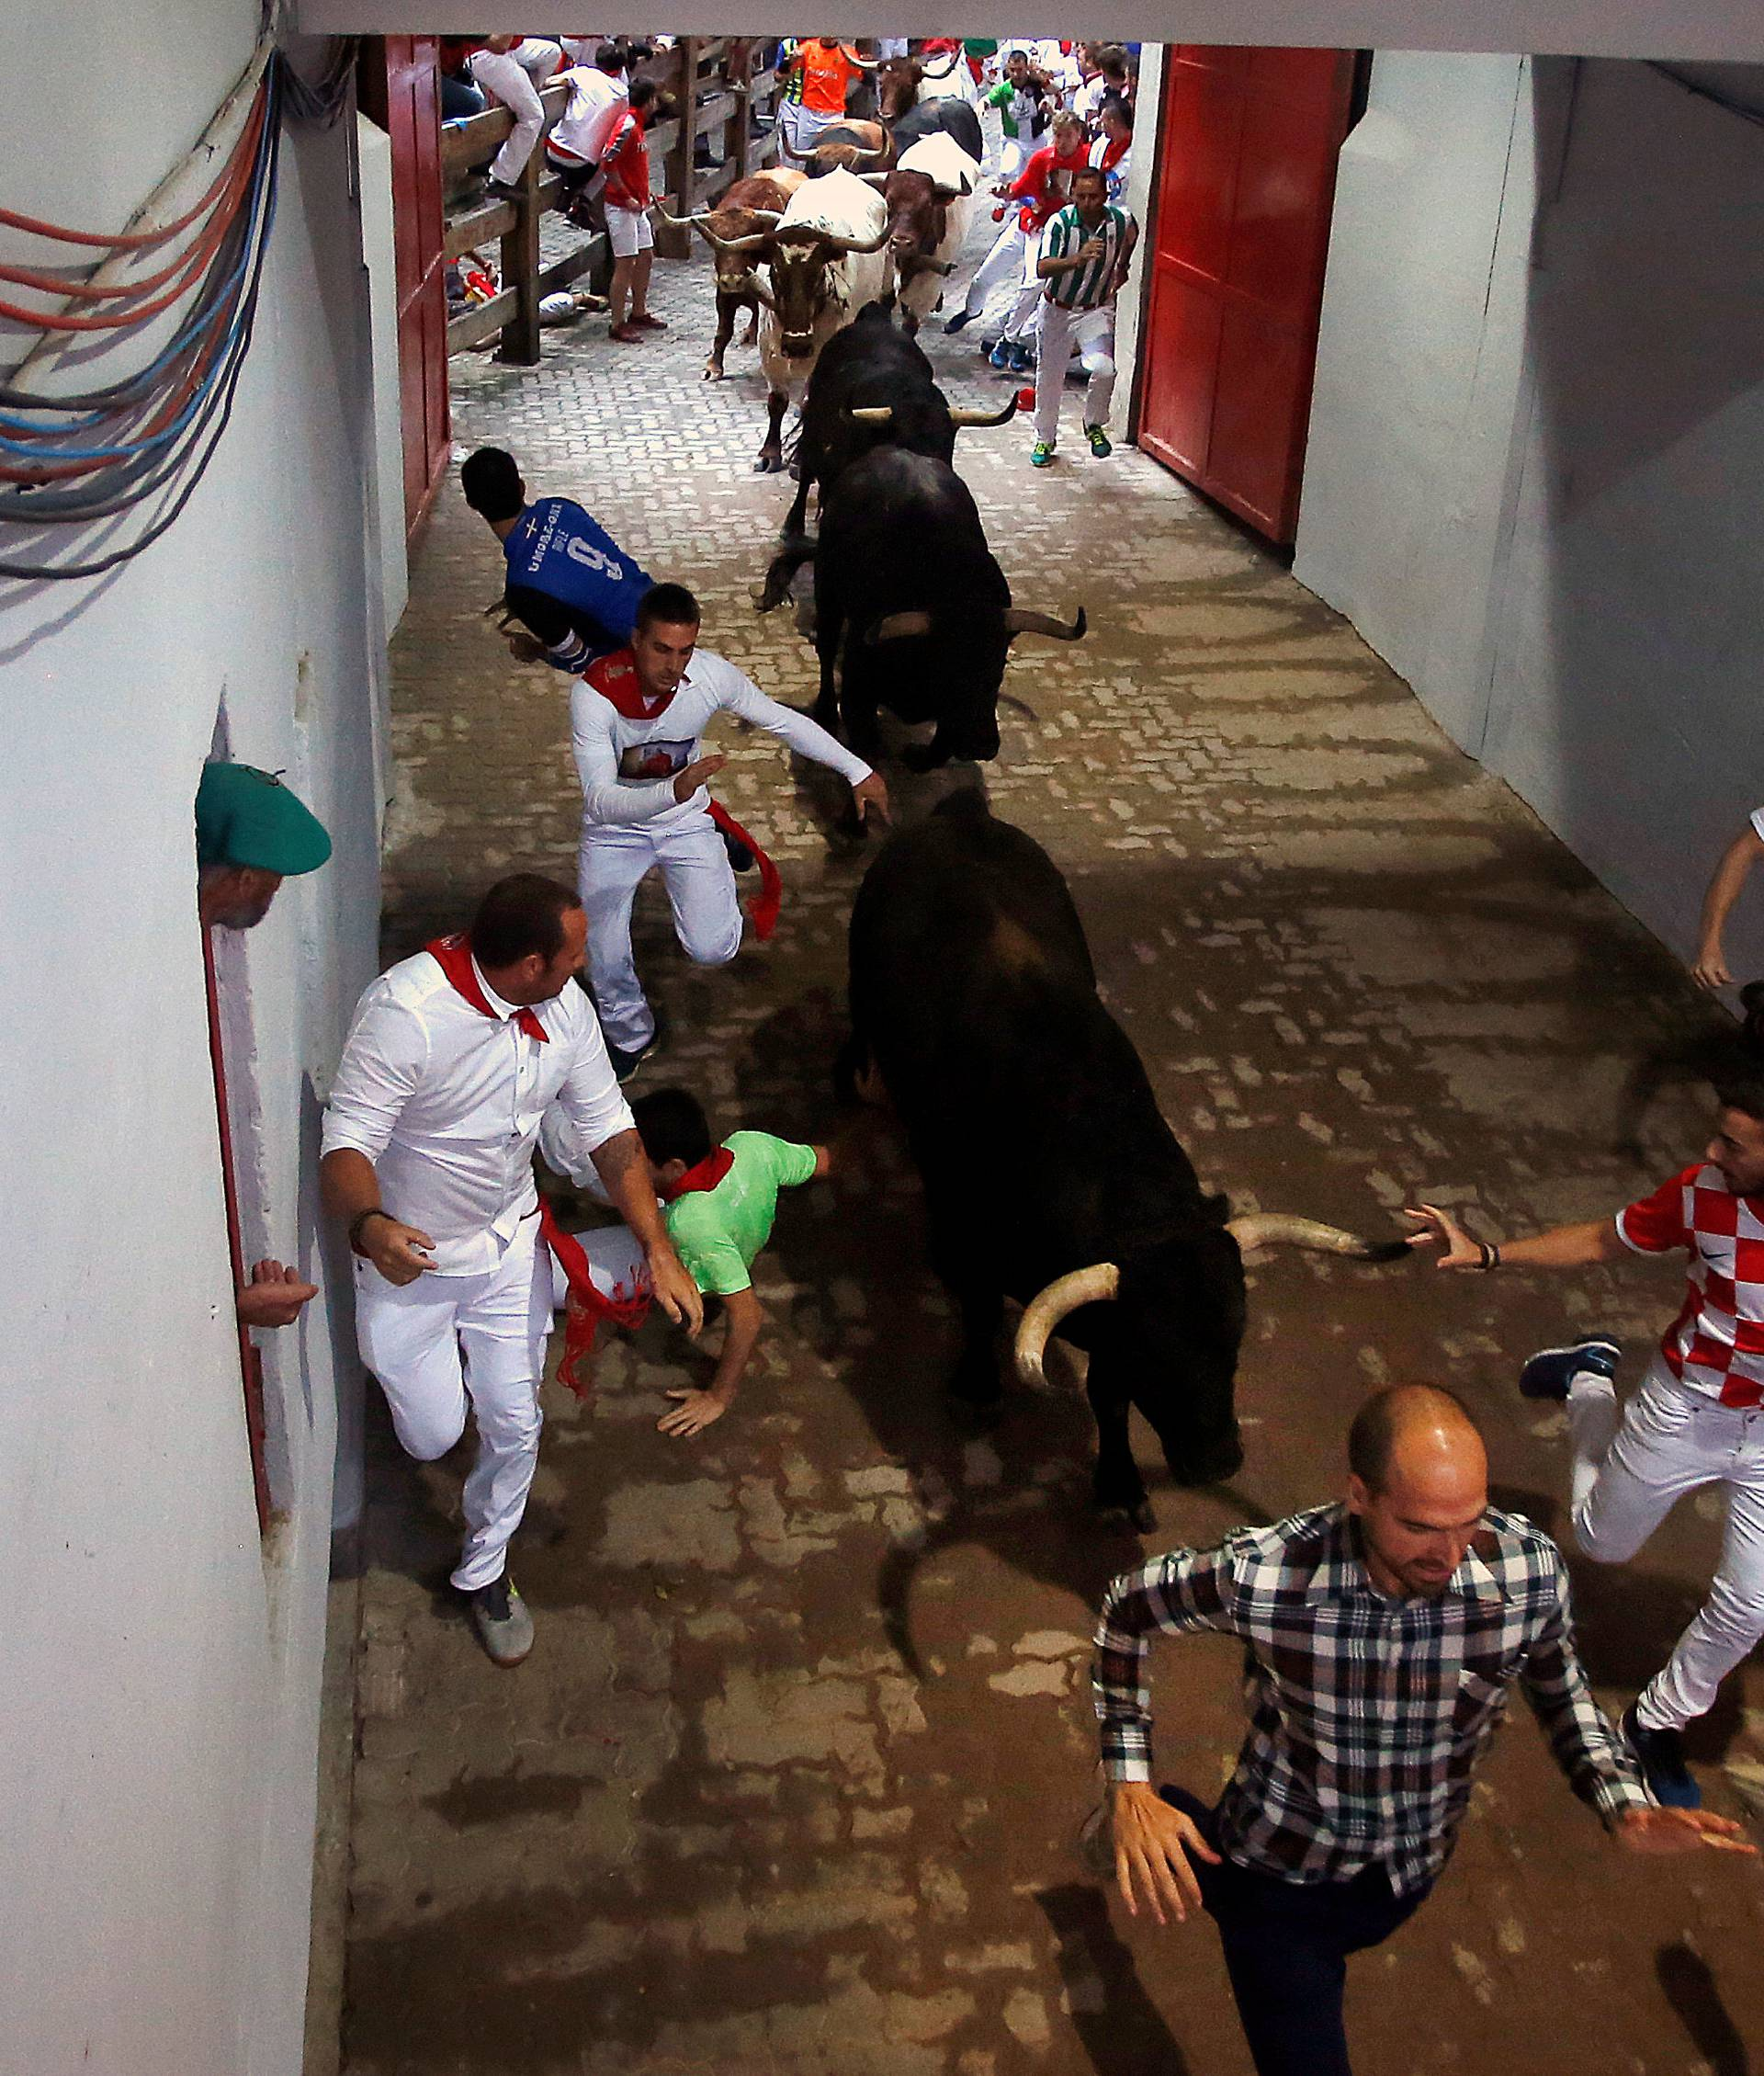 Runners sprint ahead of Fuente Ymbro fighting  bulls during the fourth running of the bulls at the San Fermin festival in Pamplona